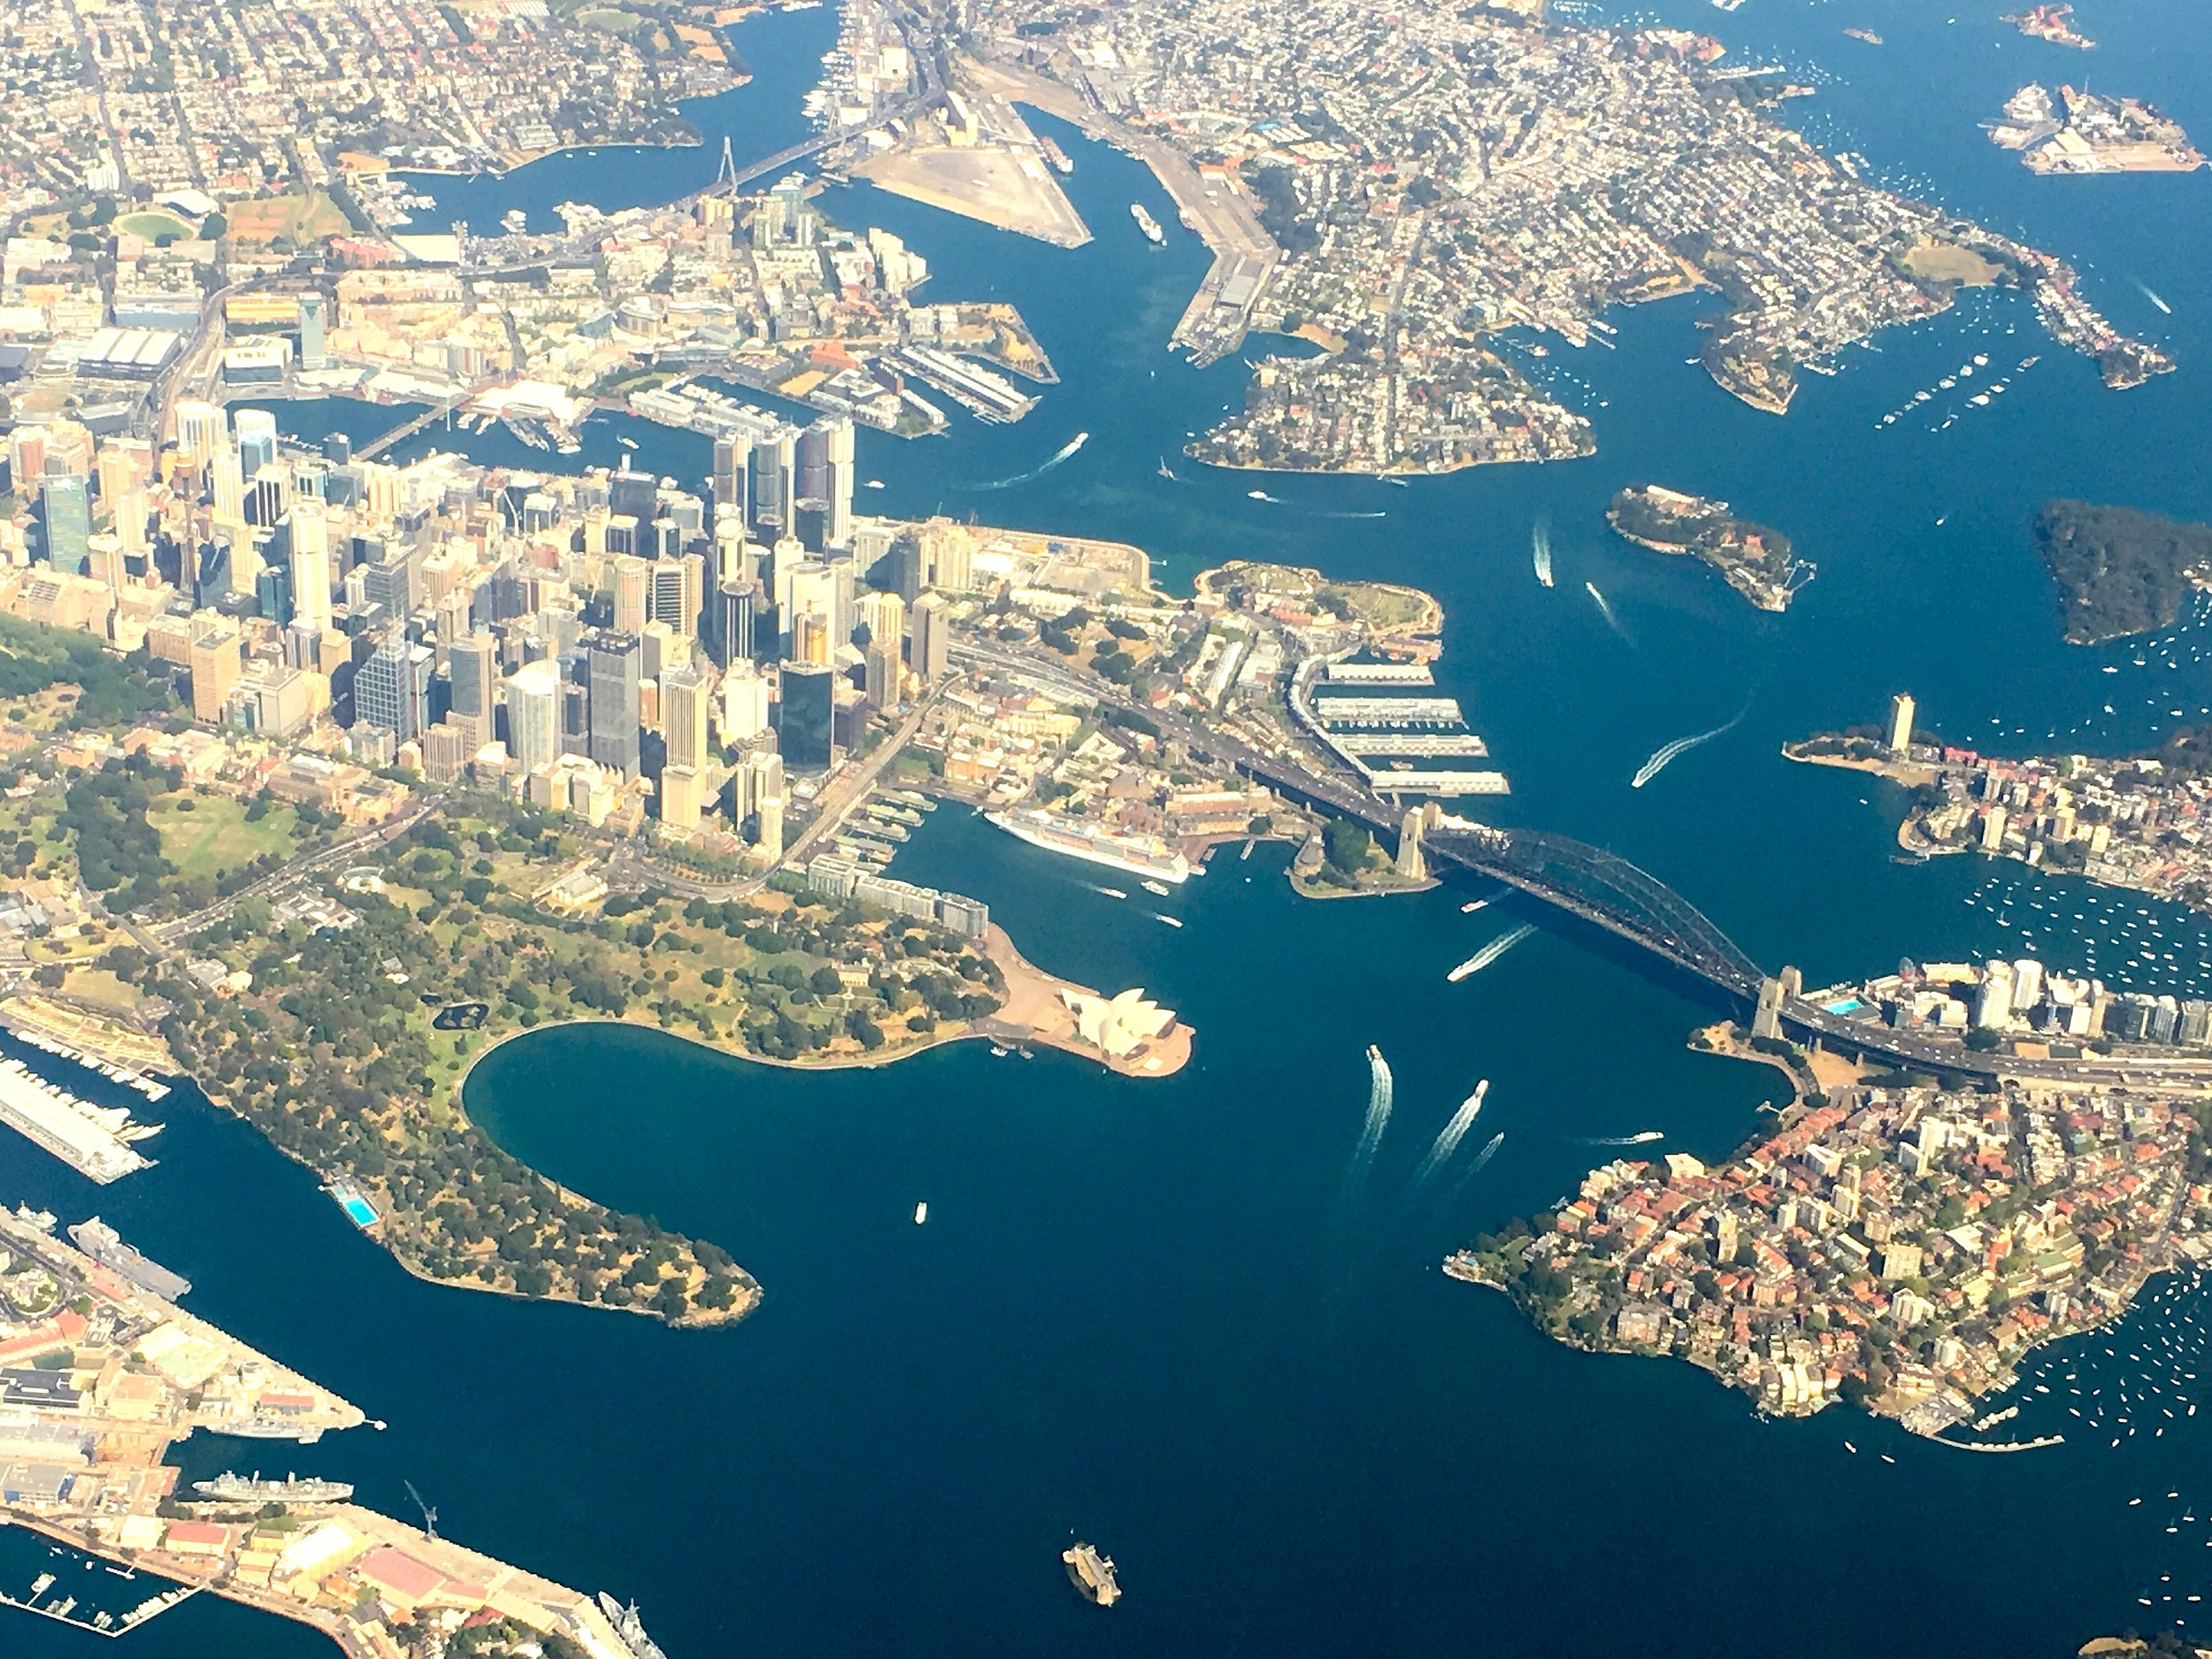 Downtown Sydney Australia from the air. Our course location is UTS Sydney.